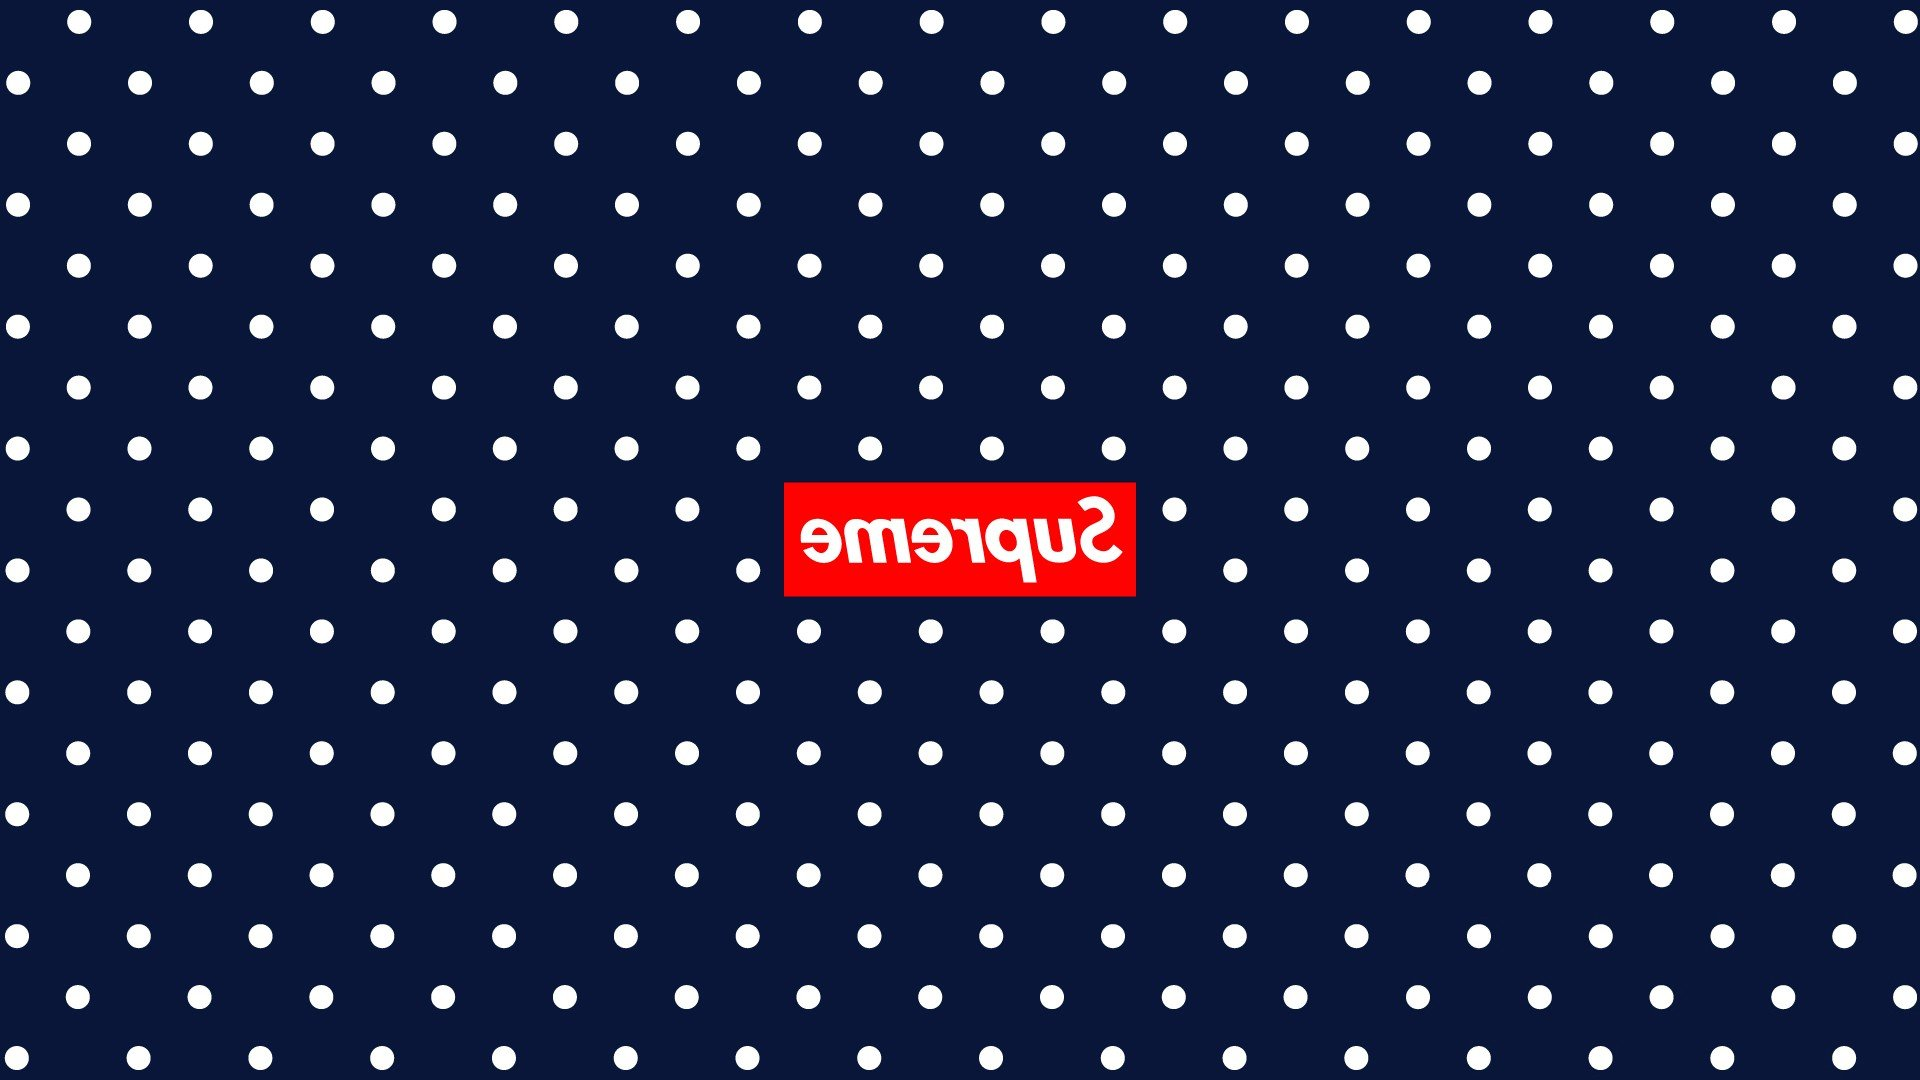 Supreme Wallpaper Ahoodie Iphone wallpaper   iphone Images   Frompo 1920x1080